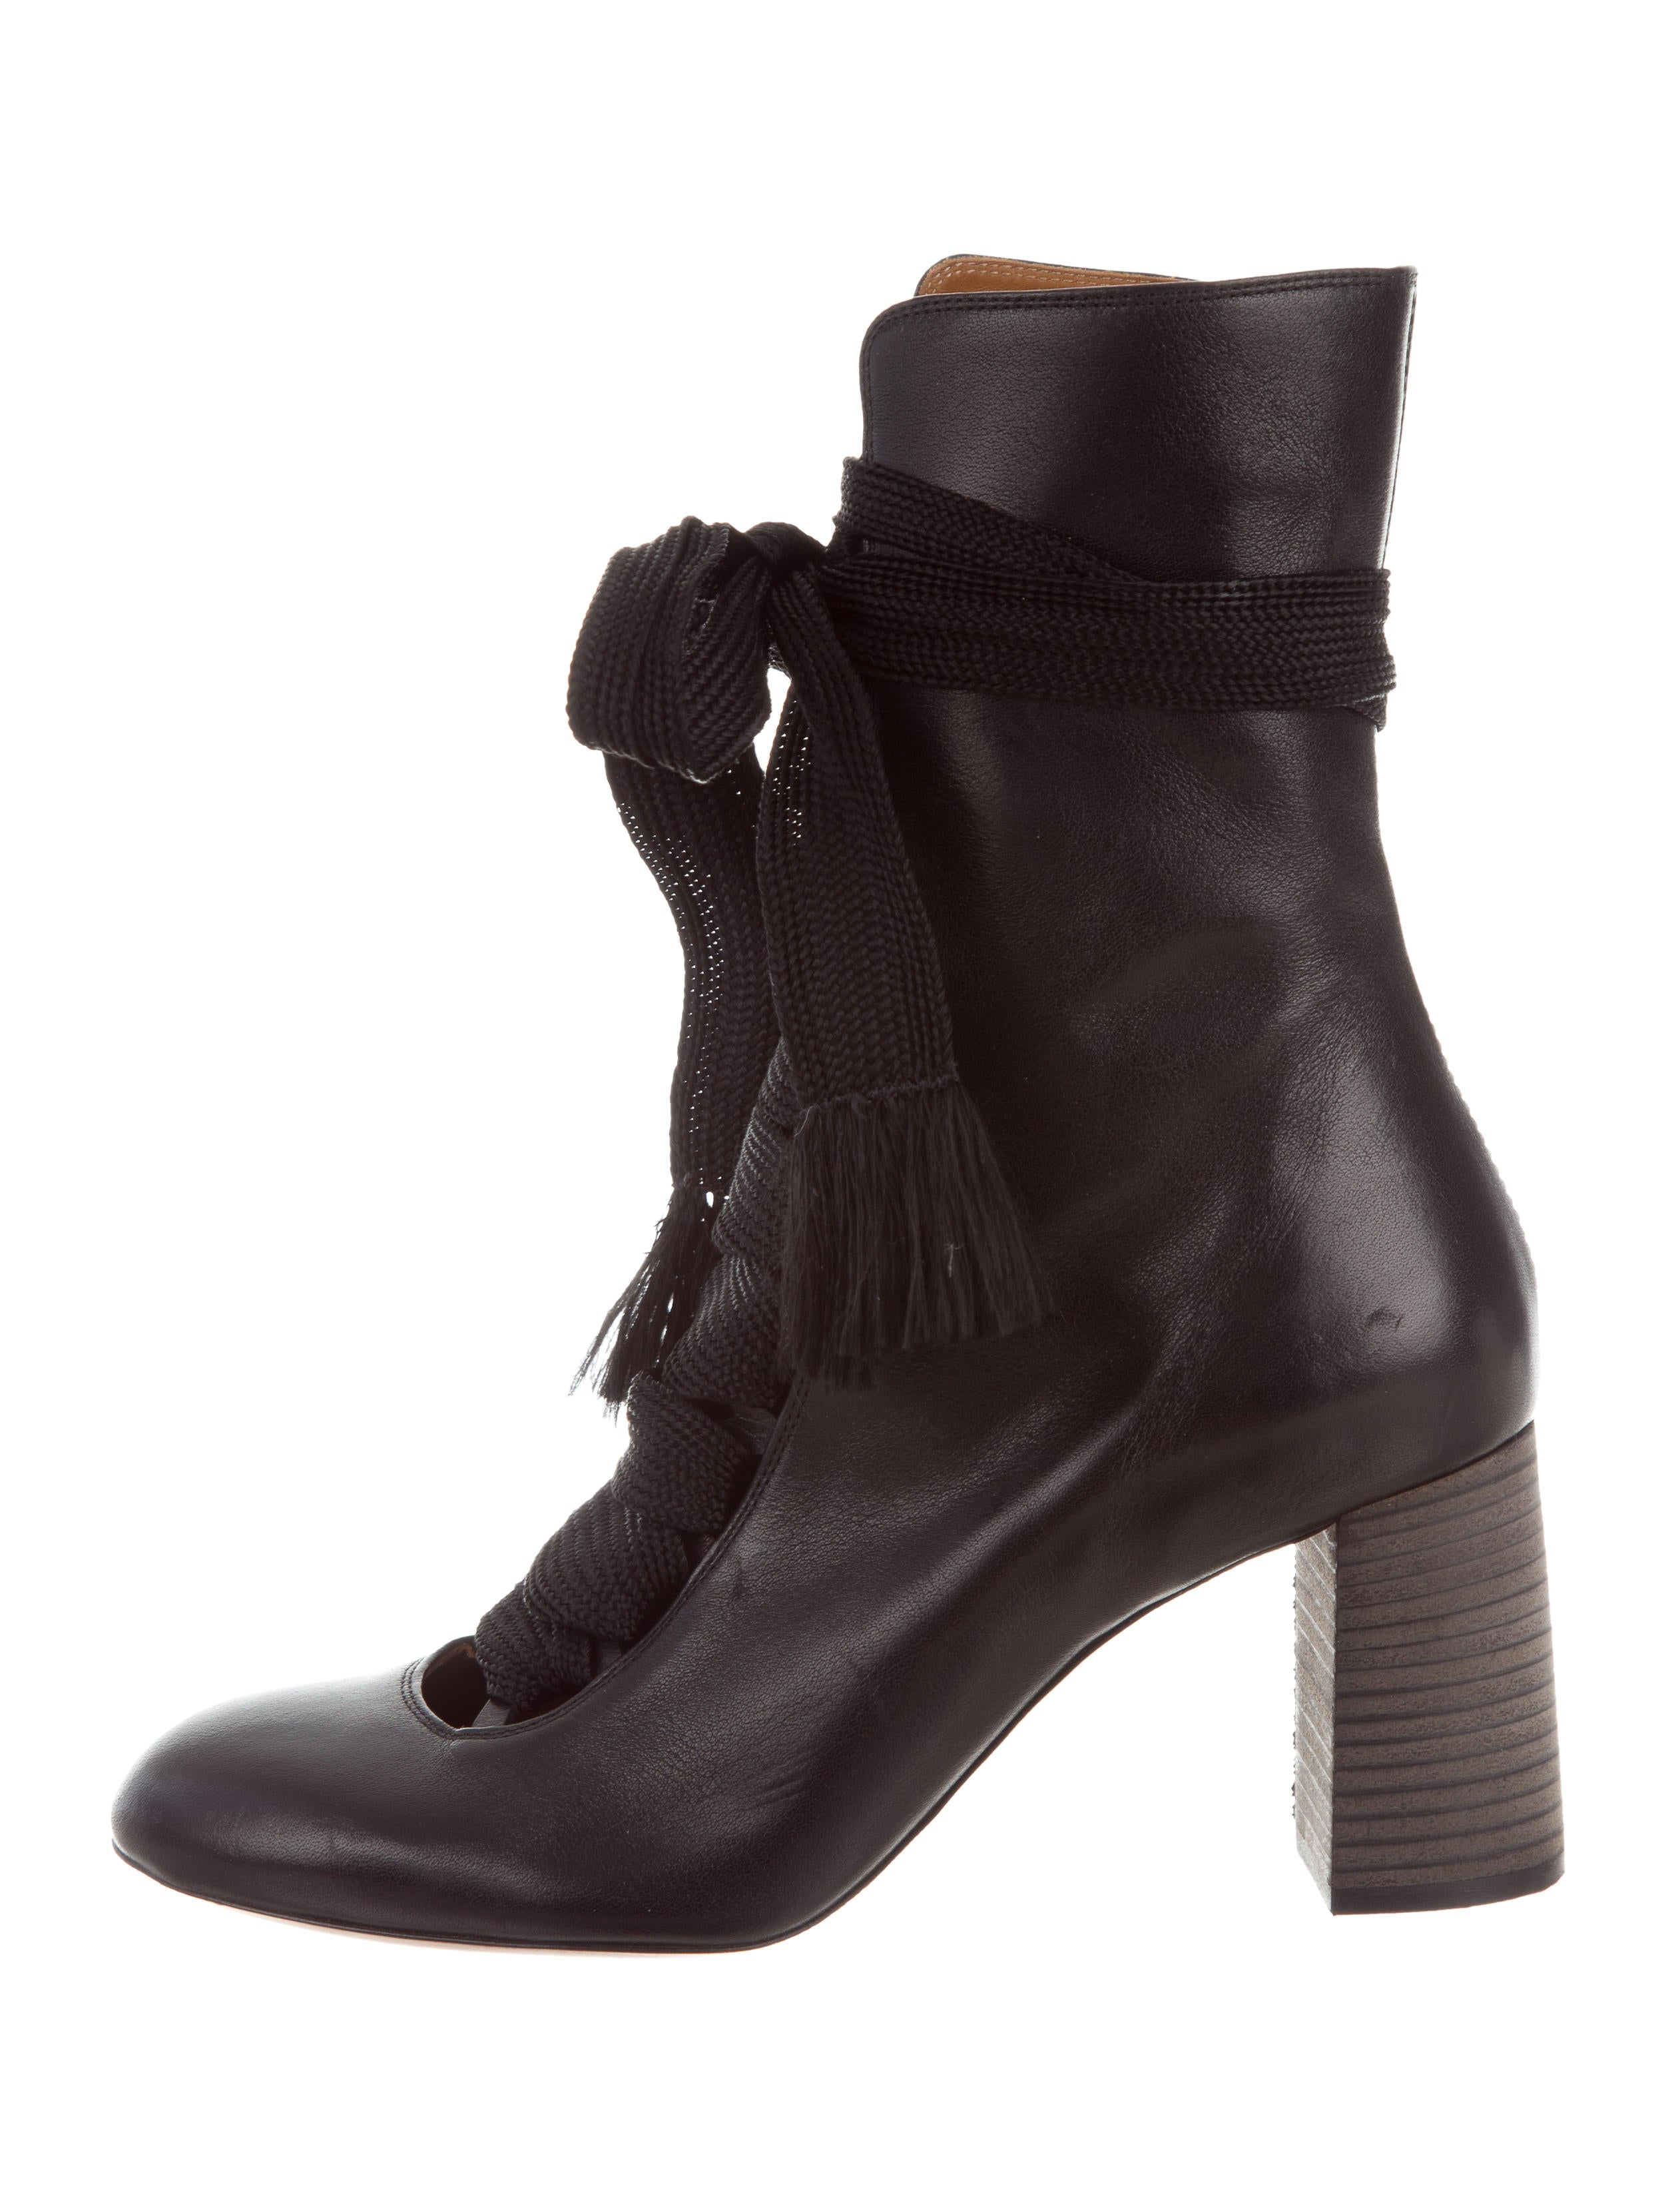 beb092f80e3431 Chloé 2018 Harper Ankle Boots buy cheap 2014 new factory outlet cheap price  huge surprise cheap